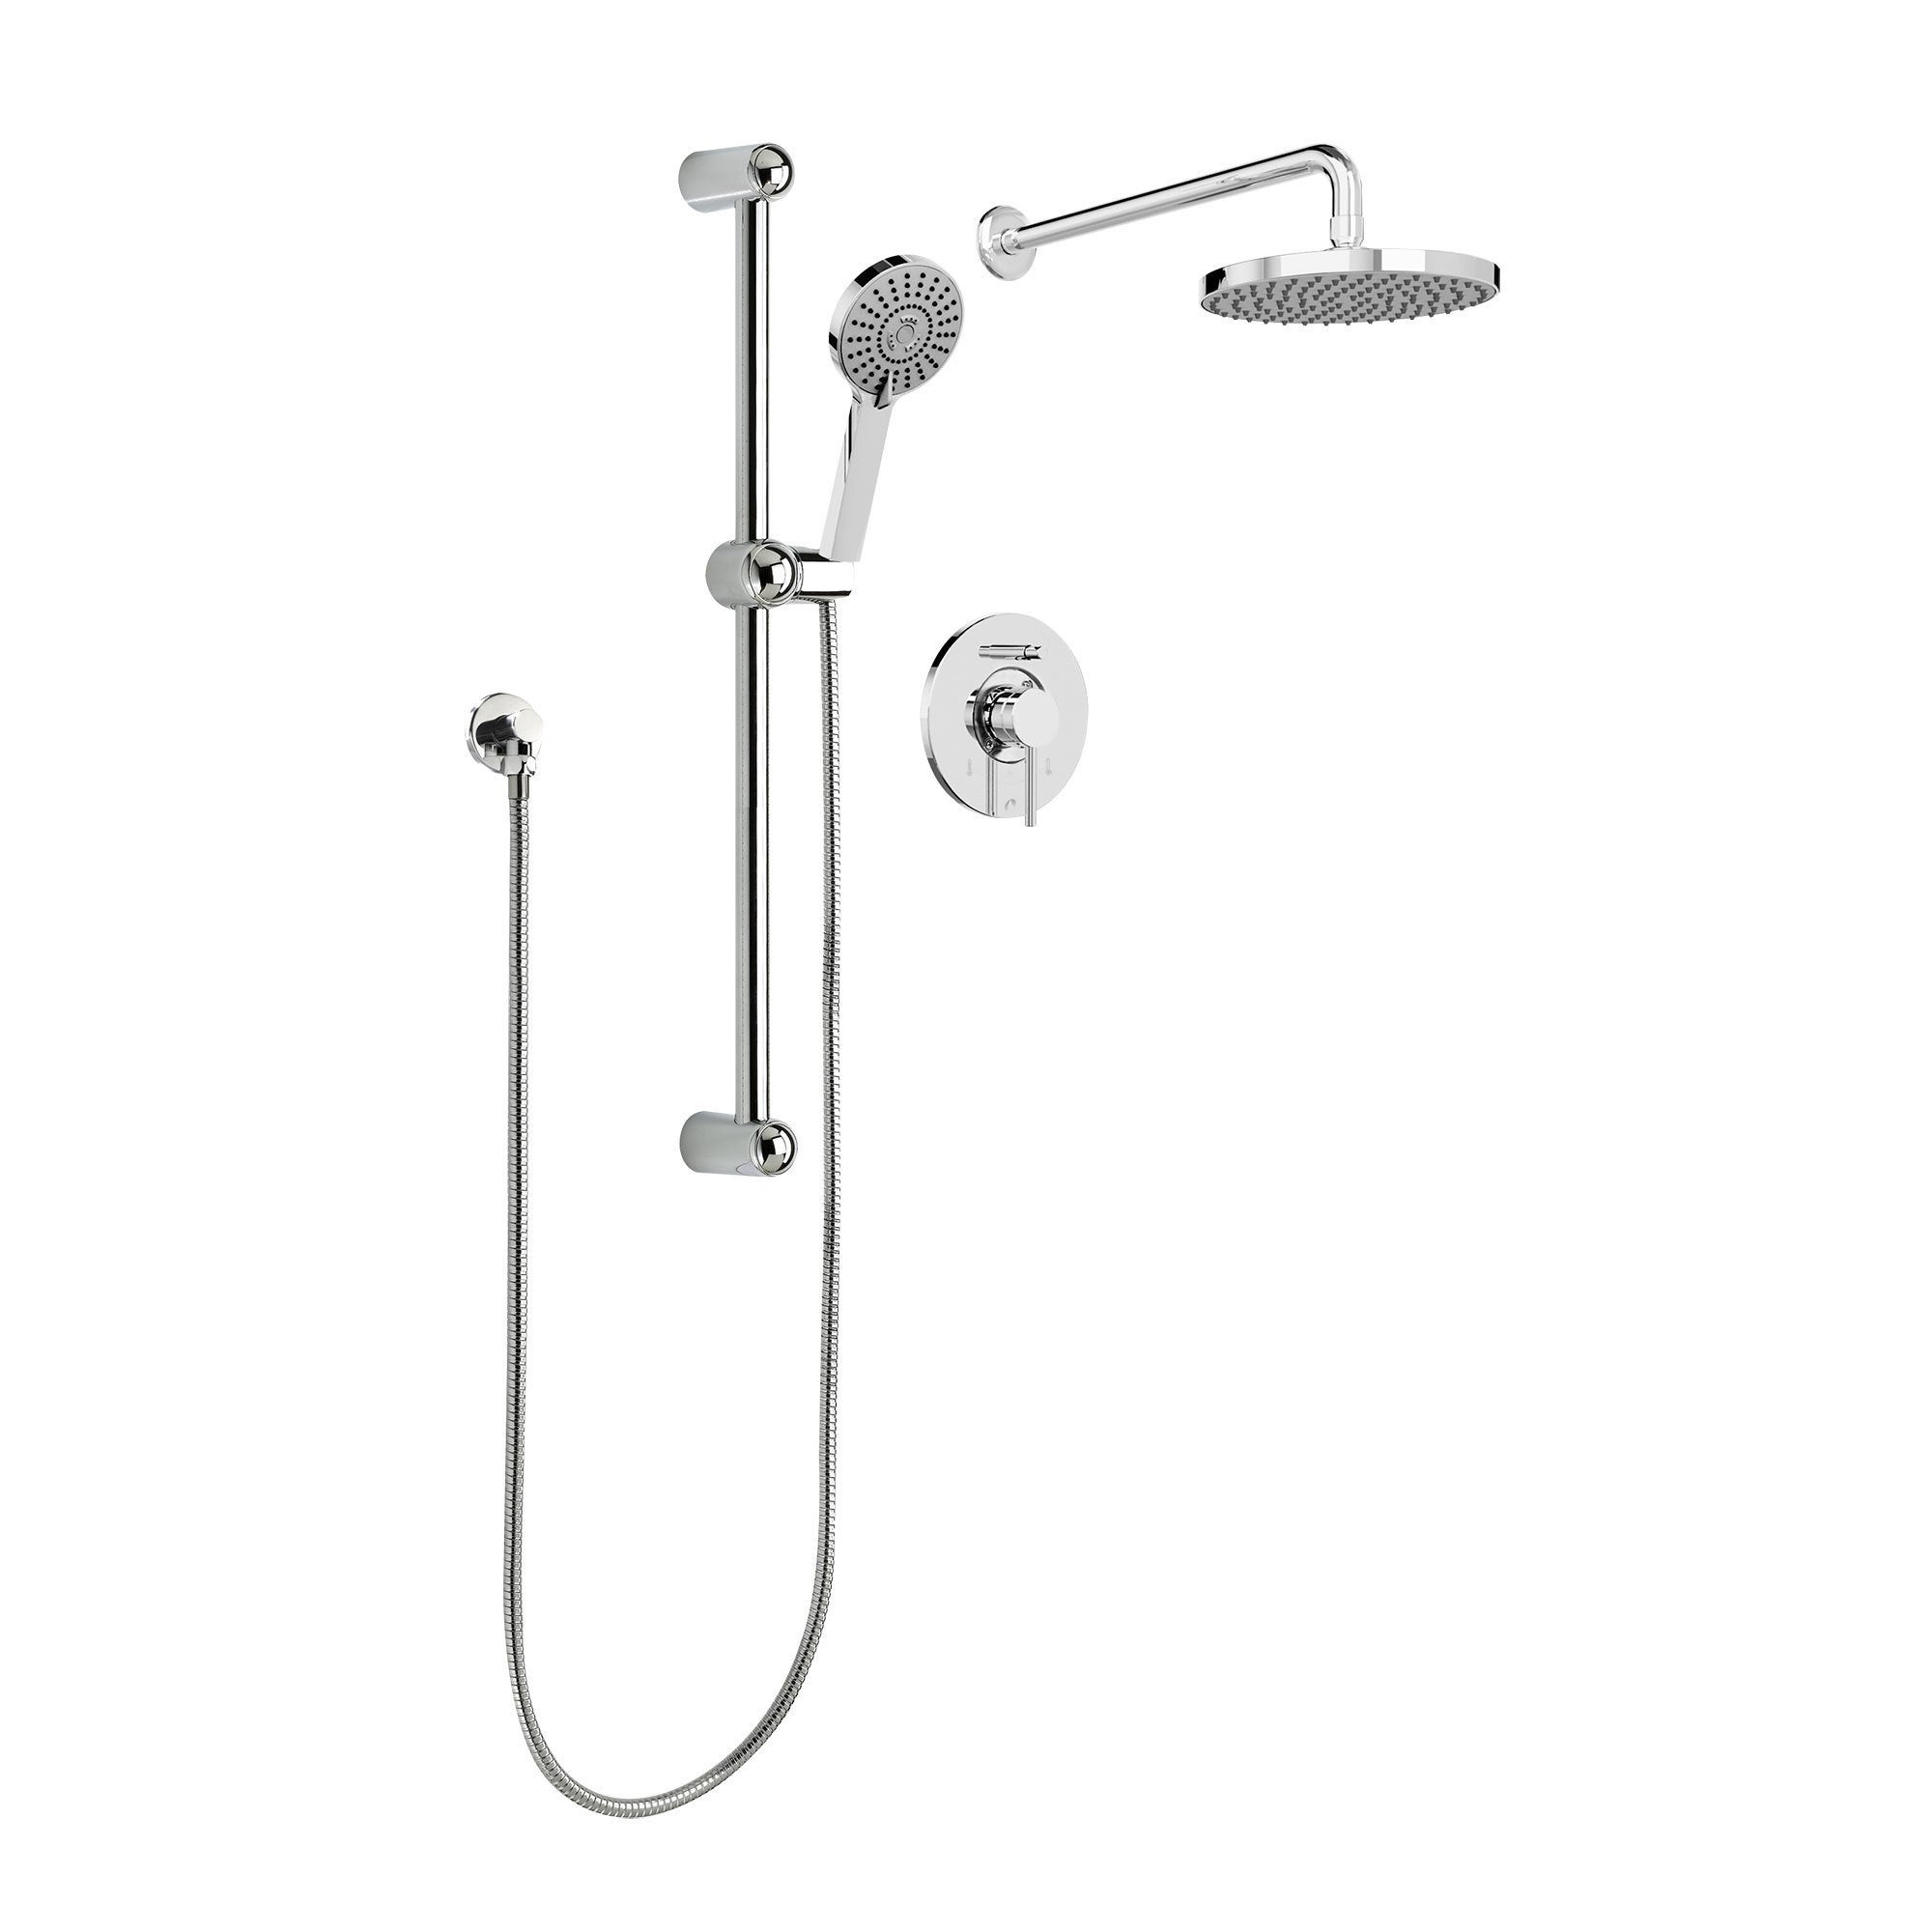 Shower Equipment Blackend Orb Waterfall Raindall Shower Head Shower Column Panel Wall Mounted Massage Jet Mixers Handshower Tub Spout Shower Comfortable And Easy To Wear Back To Search Resultshome Improvement